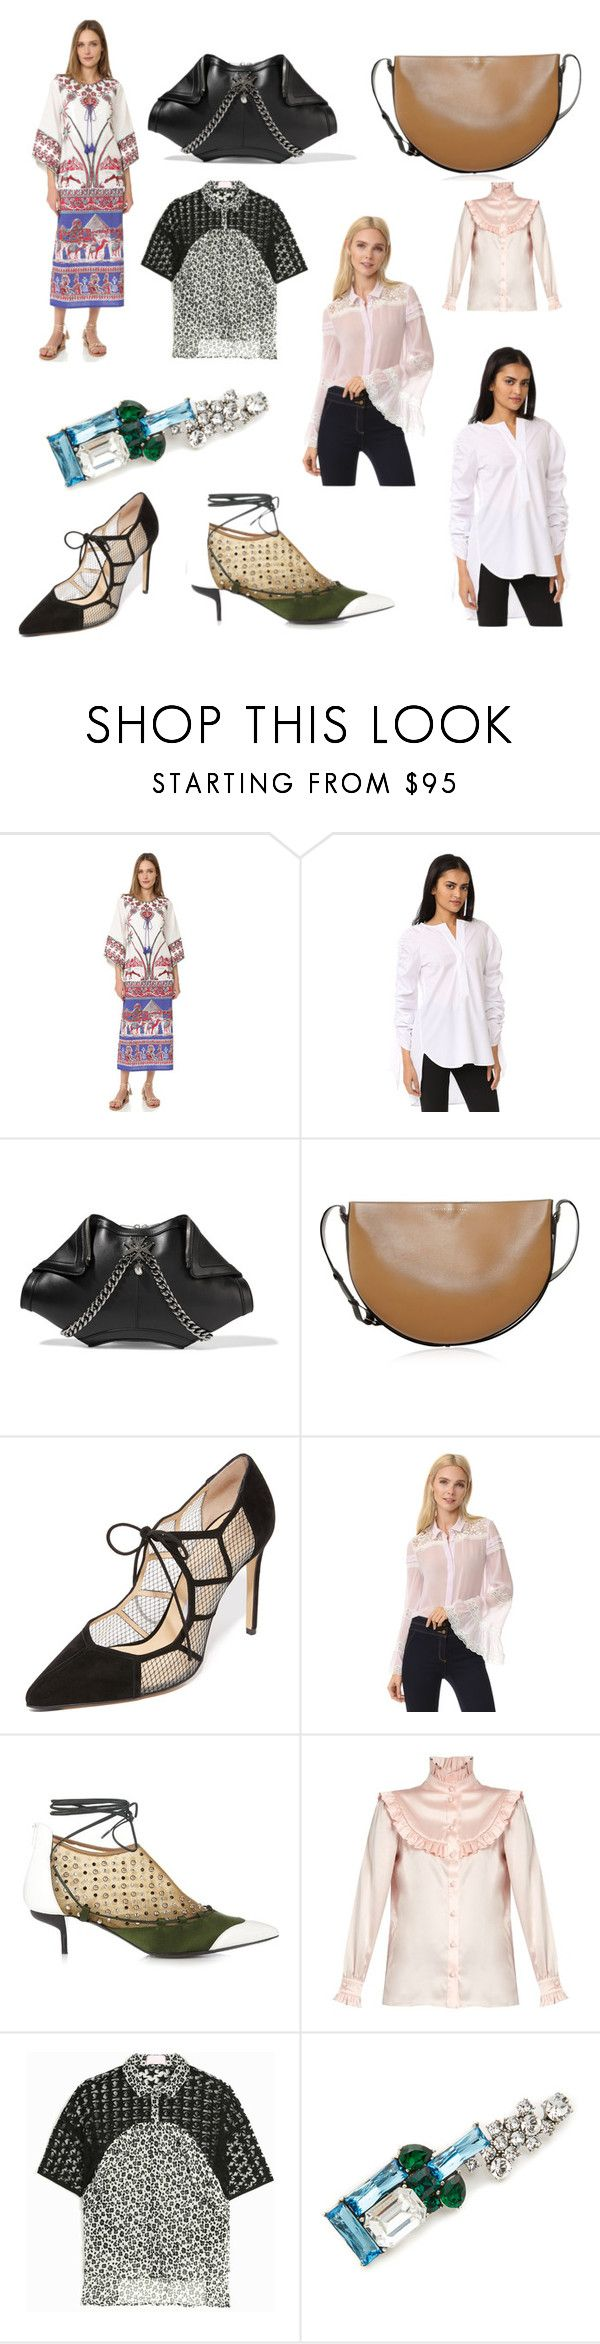 """""""Style jackpot"""" by cate-jennifer ❤ liked on Polyvore featuring Figue, Georgia Alice, Alexander McQueen, Victoria Beckham, Bionda Castana, Giambattista Valli, J.W. Anderson, Yves Saint Laurent, Giamba and Marc Jacobs"""